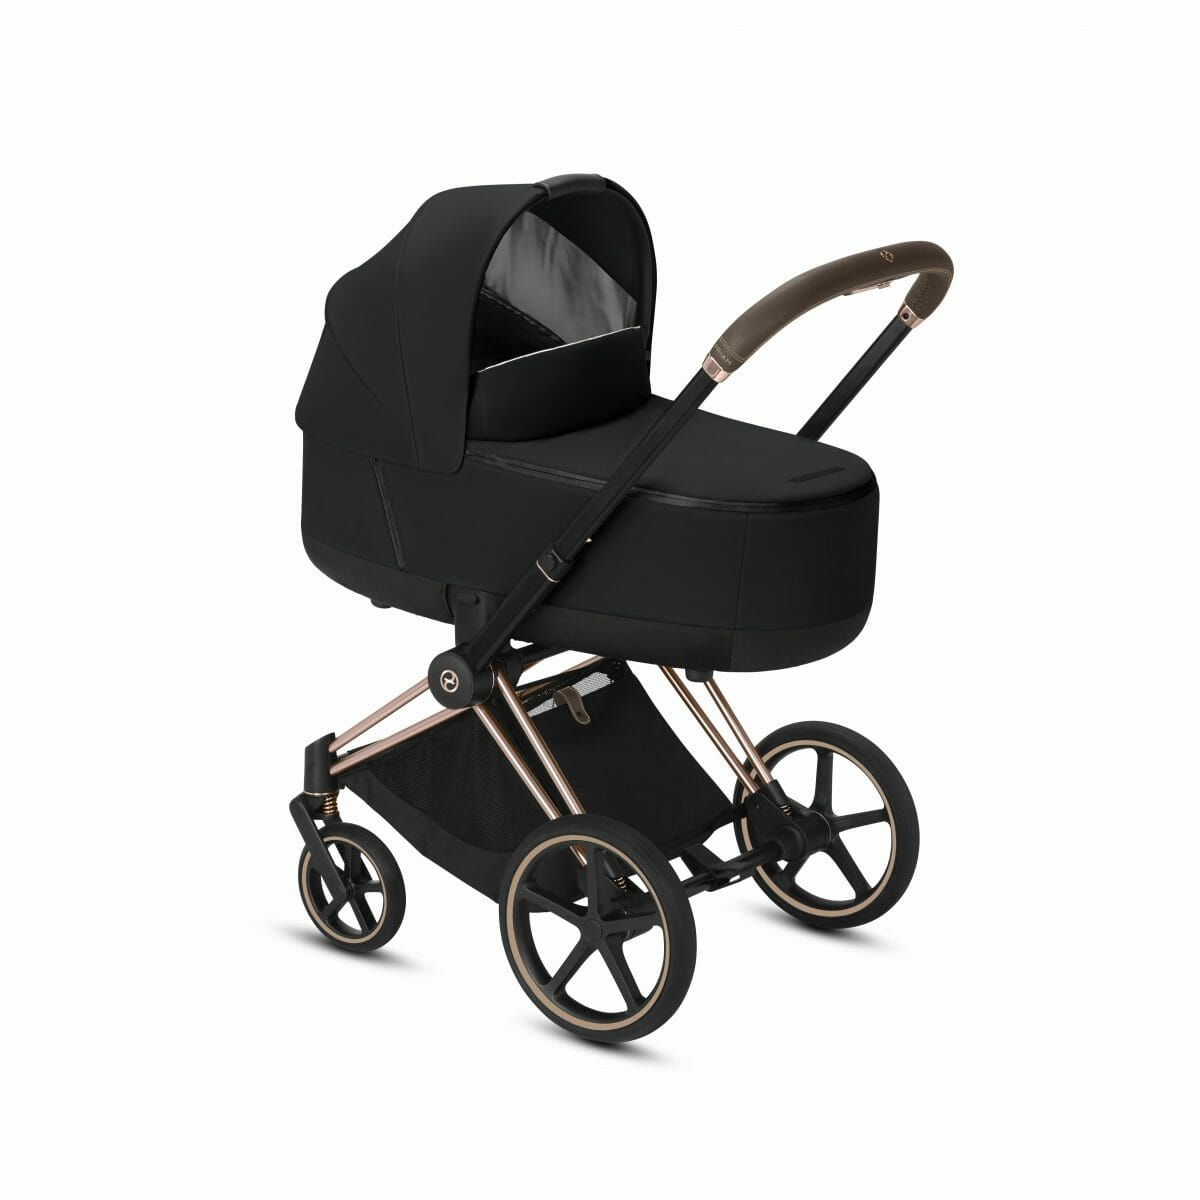 Cybex Priam Rose Gold With Black Carry Cot